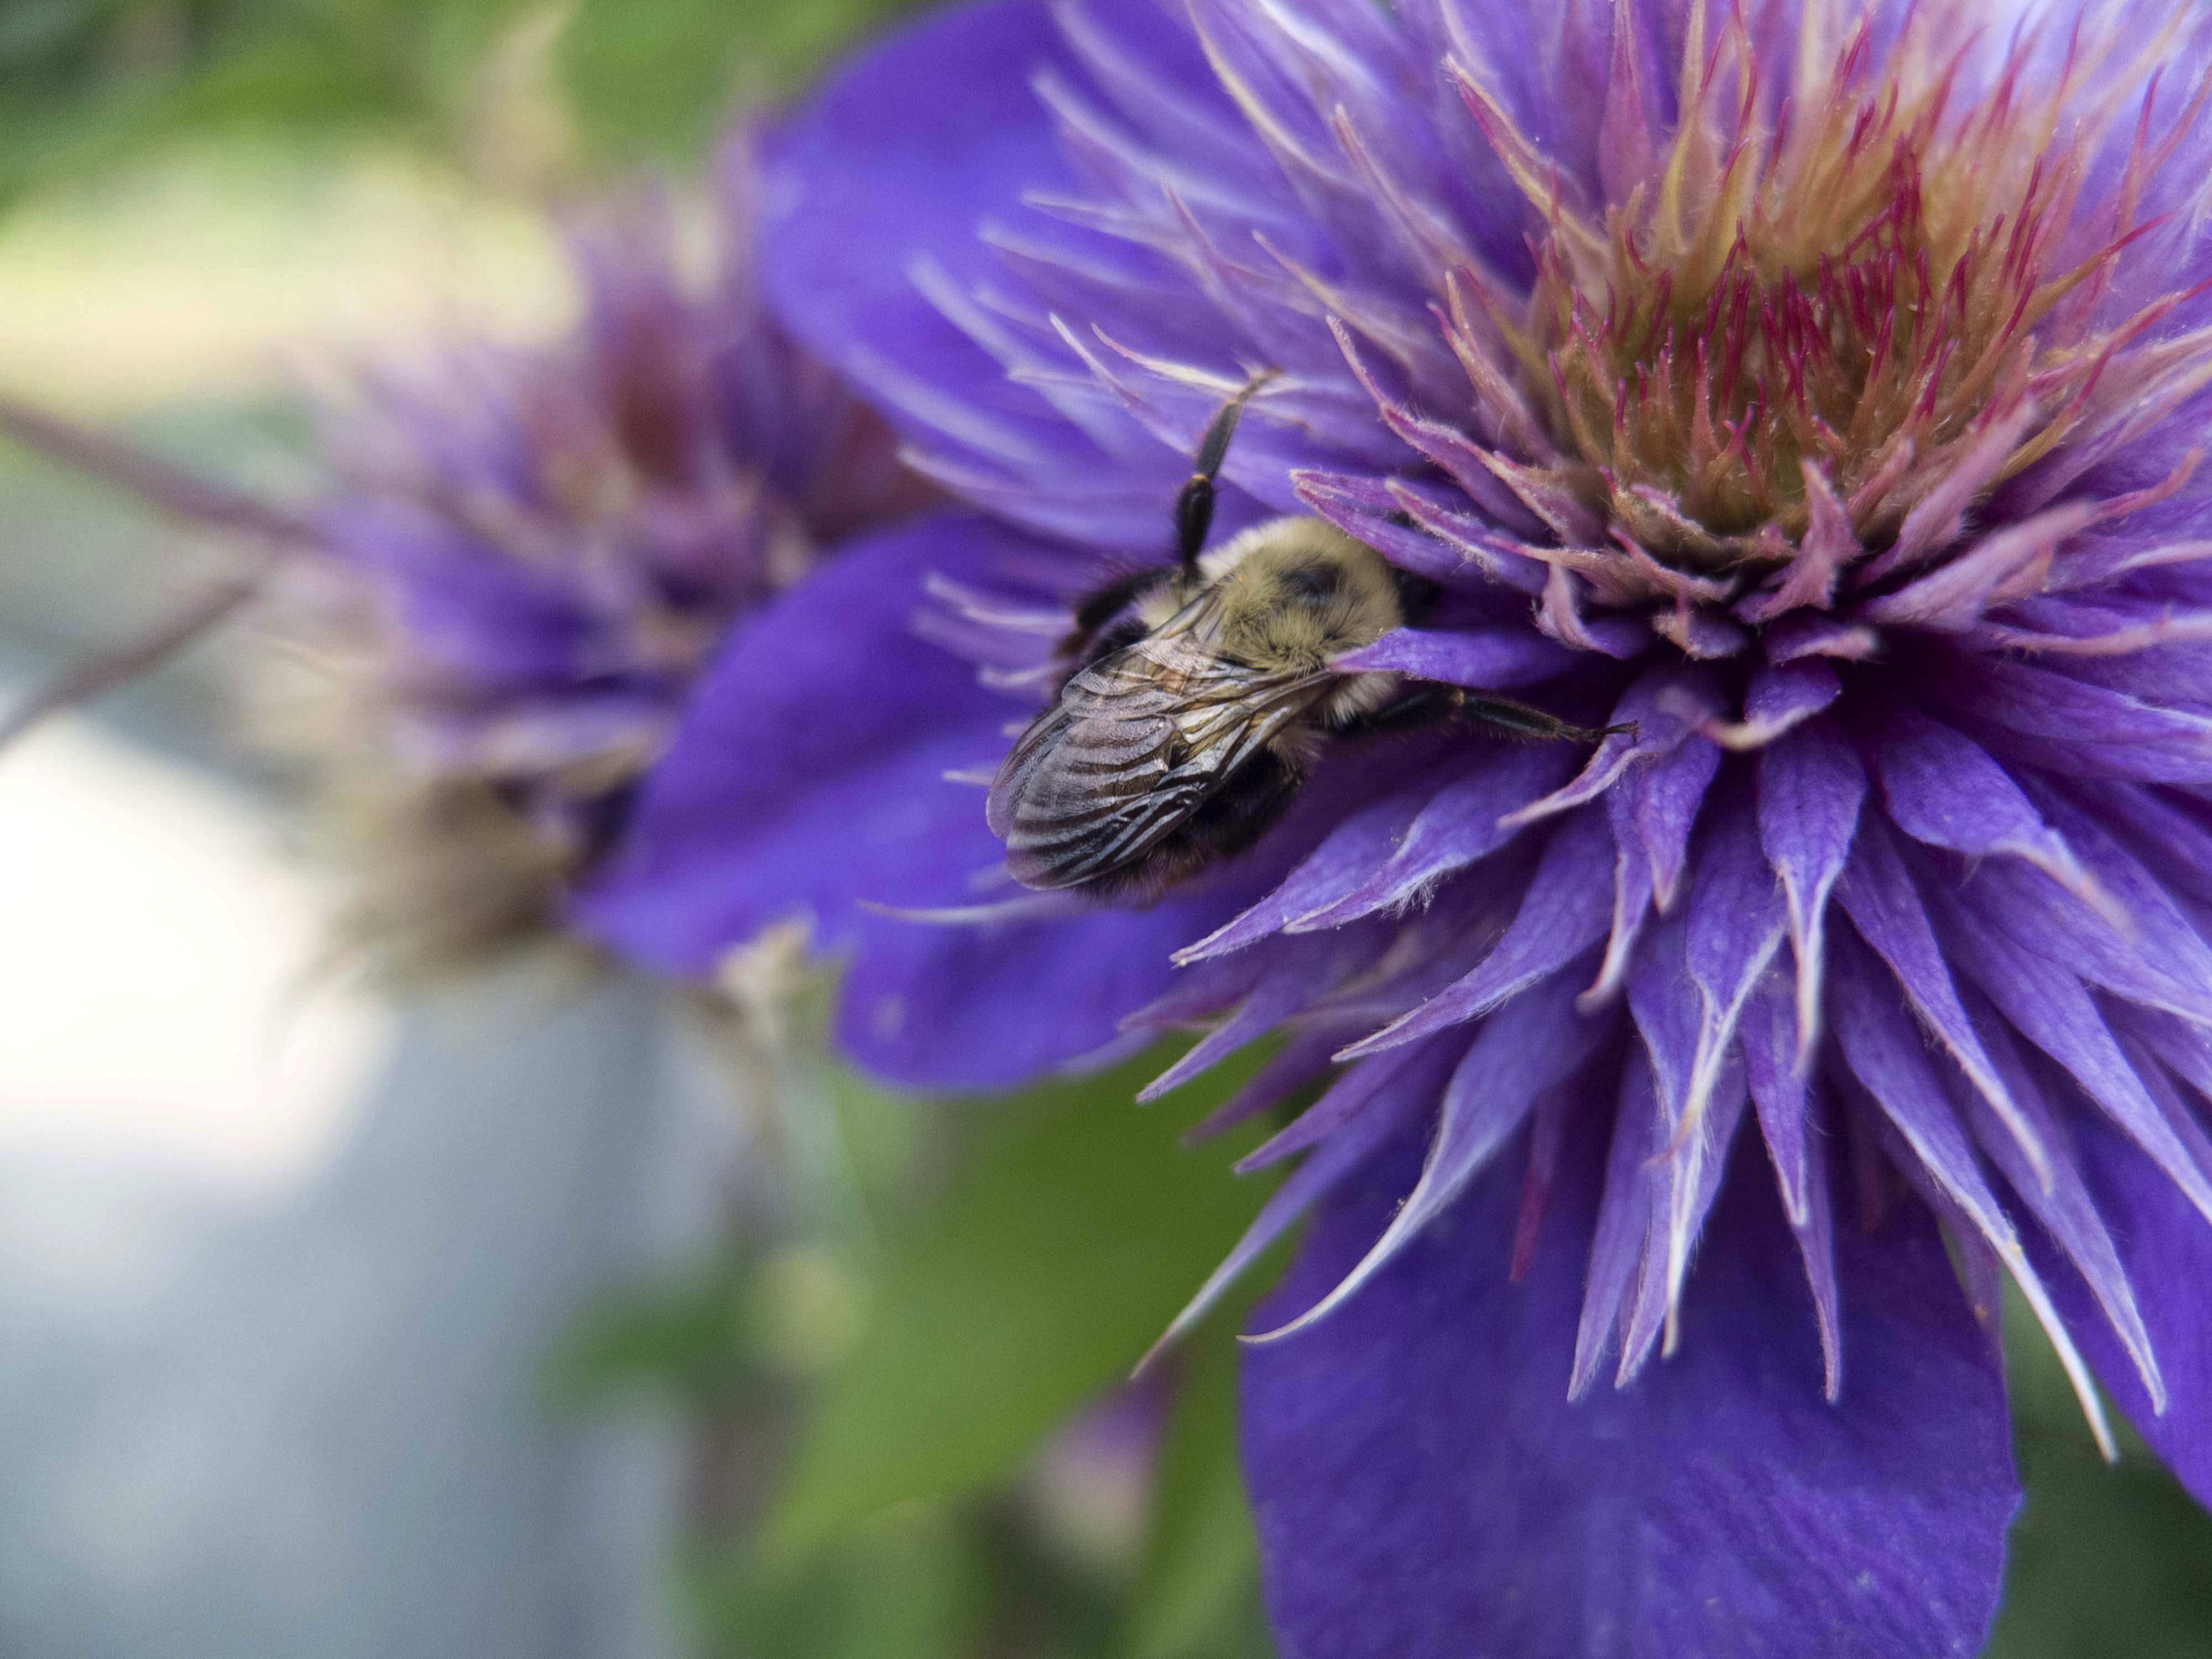 Closeup Clematis Flower Plant With Insecting Bees Download